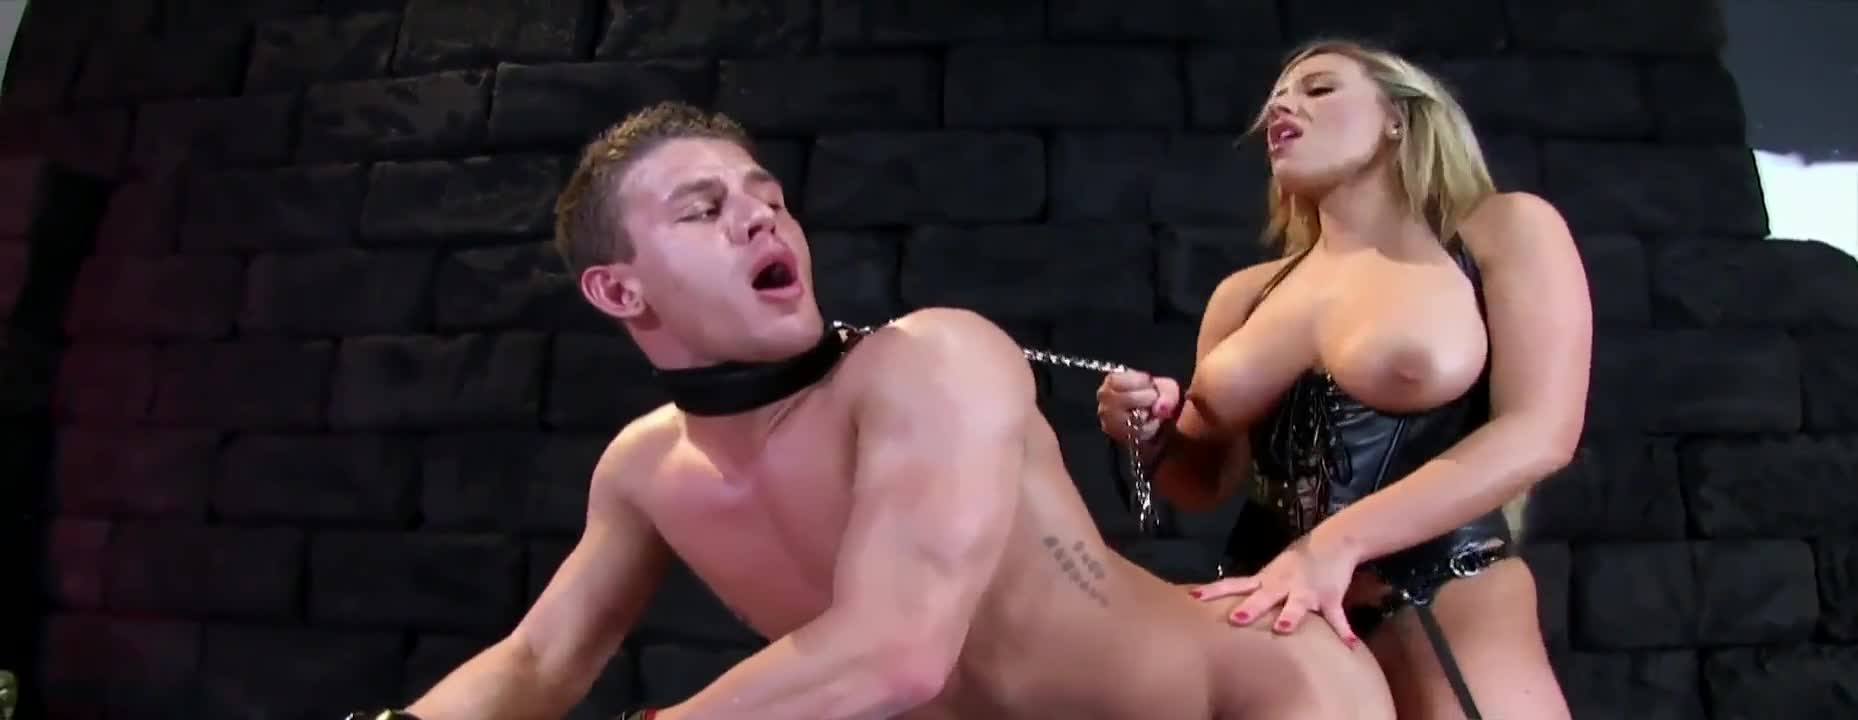 Collared, leashed, and fucked.